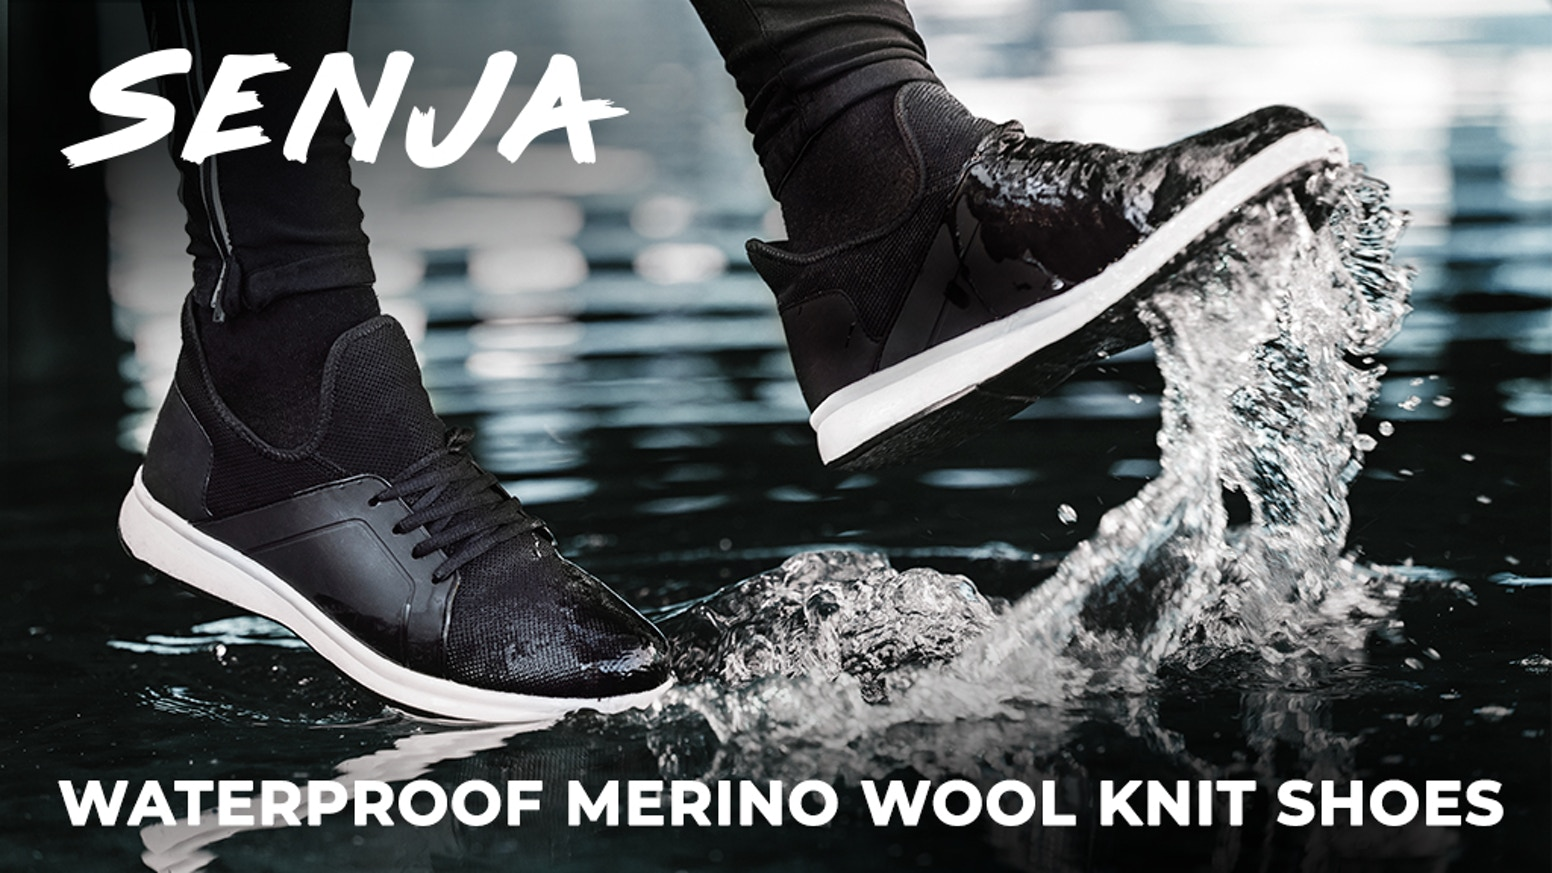 Wherever you wander, go further in Senja. Waterproof, lightweight, and breathable footwear for adventurers